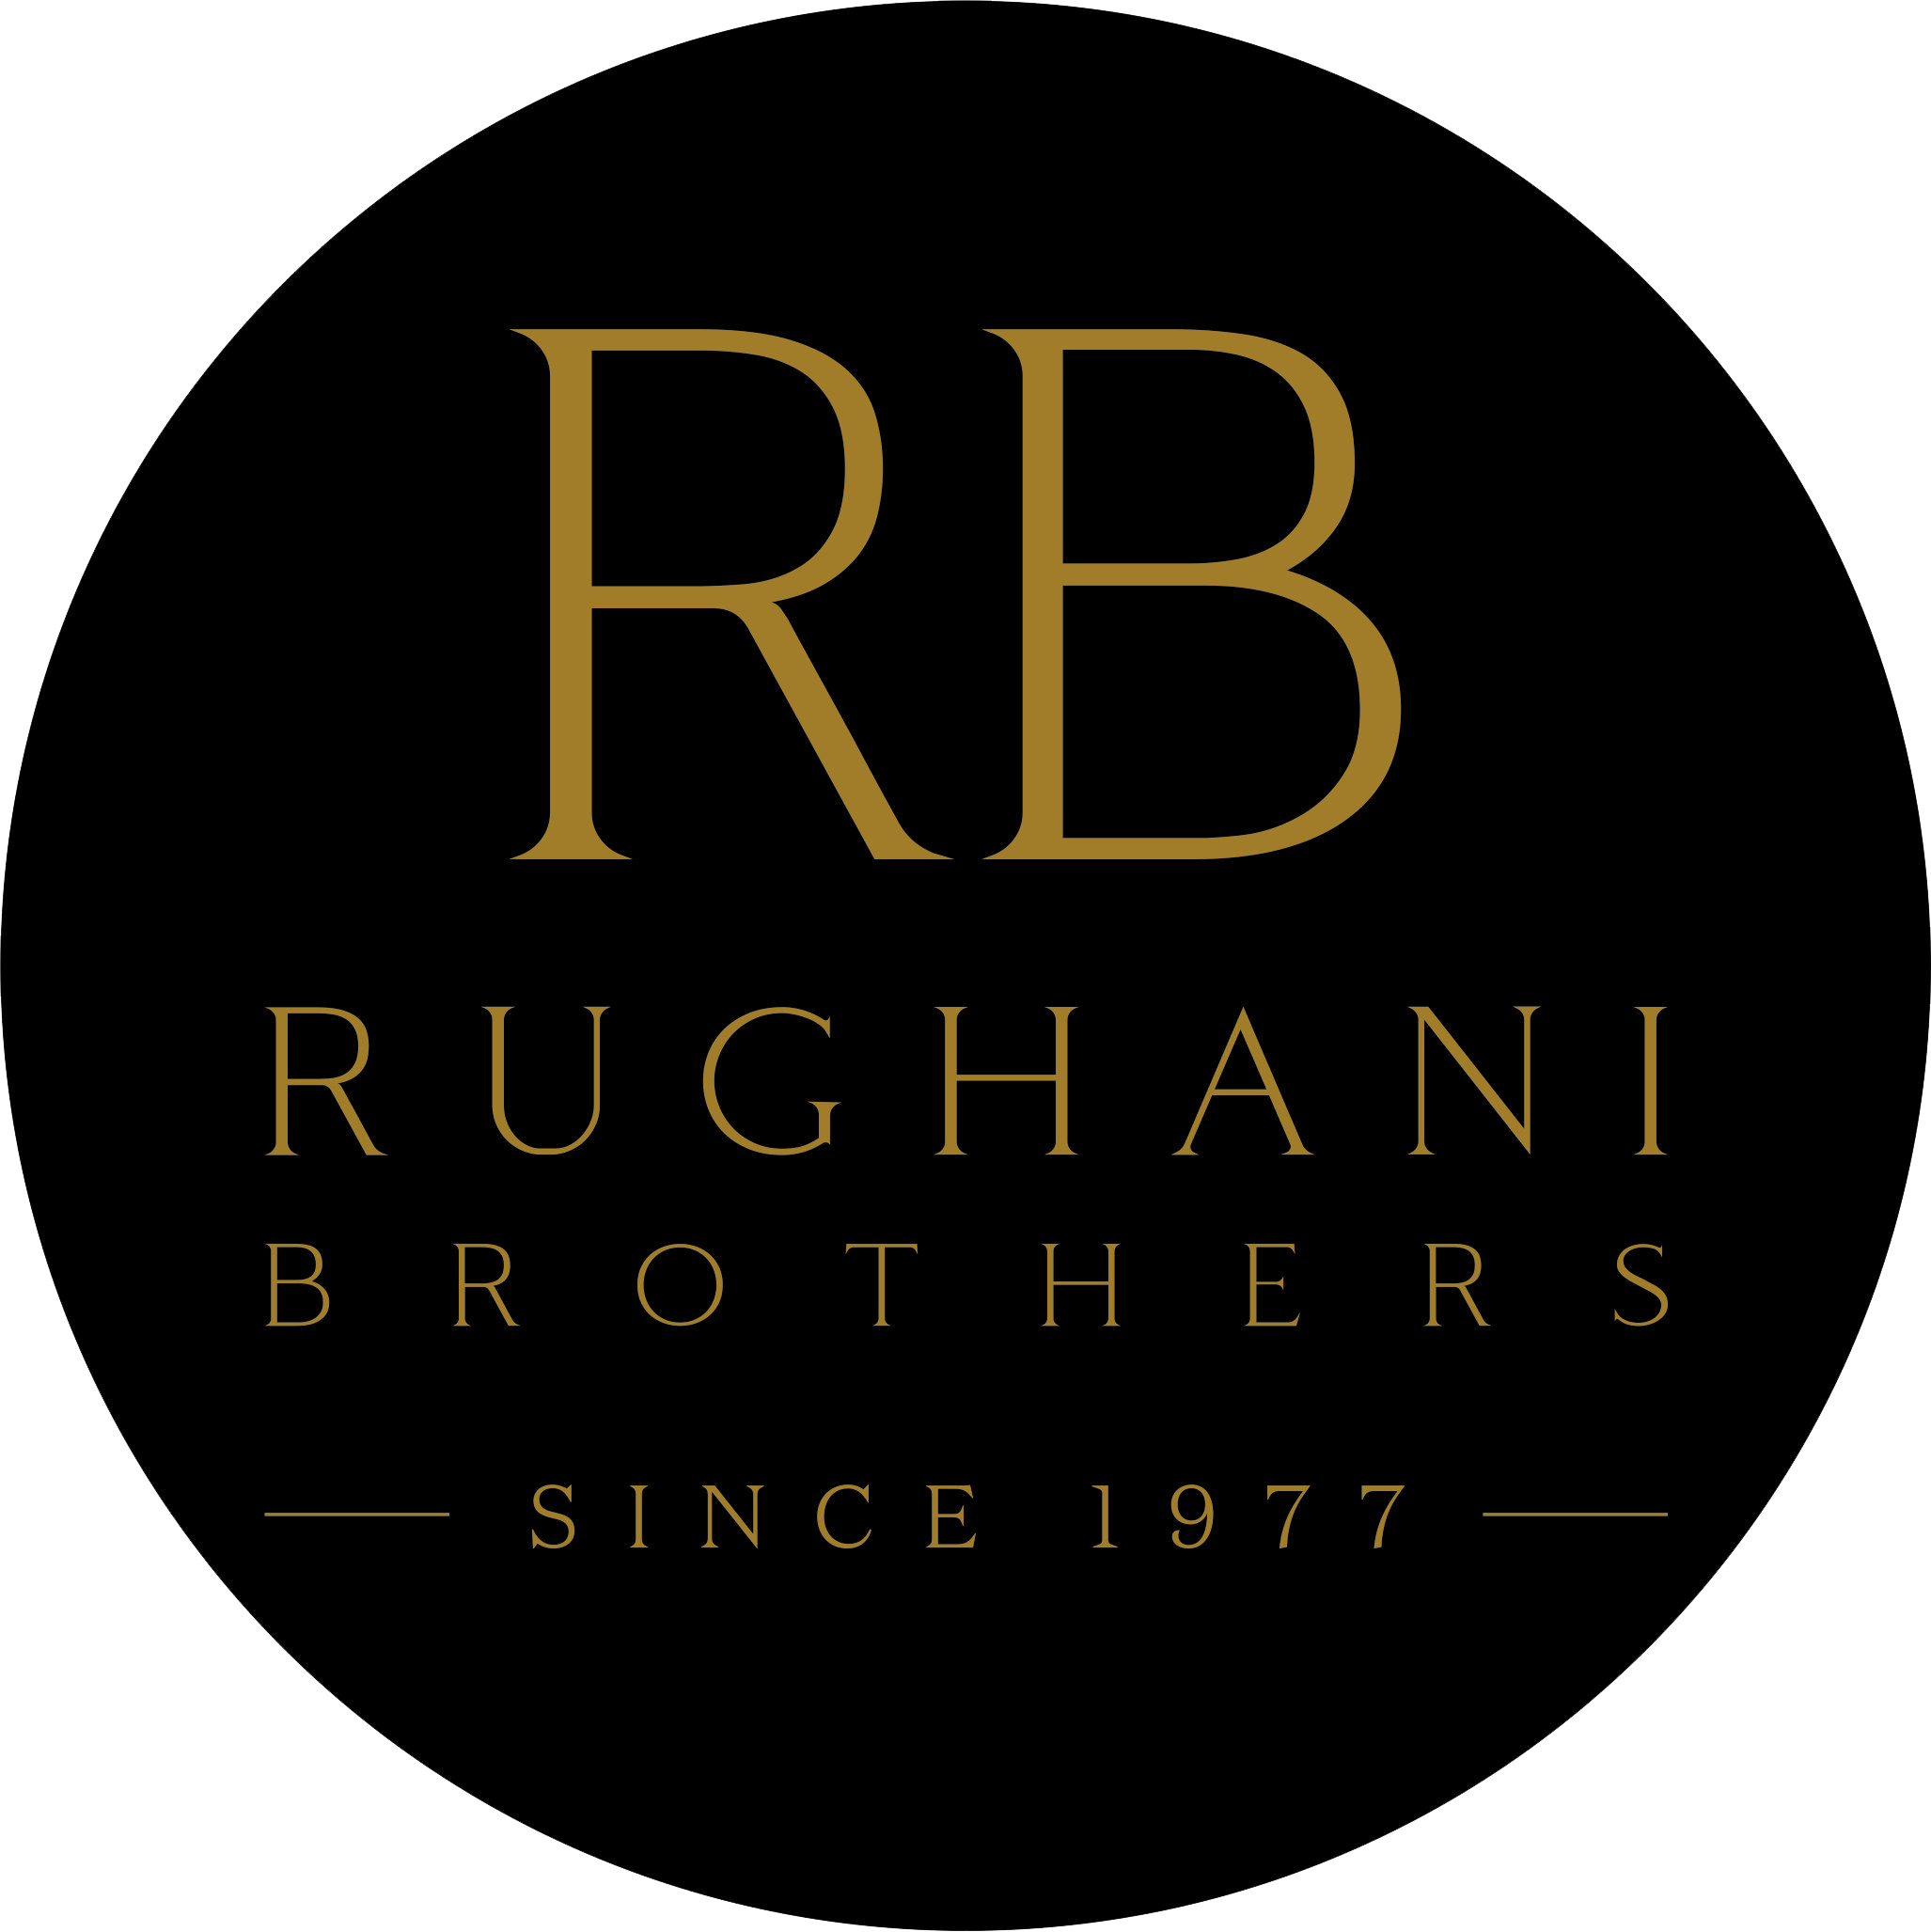 RUGHANI BROTHERS